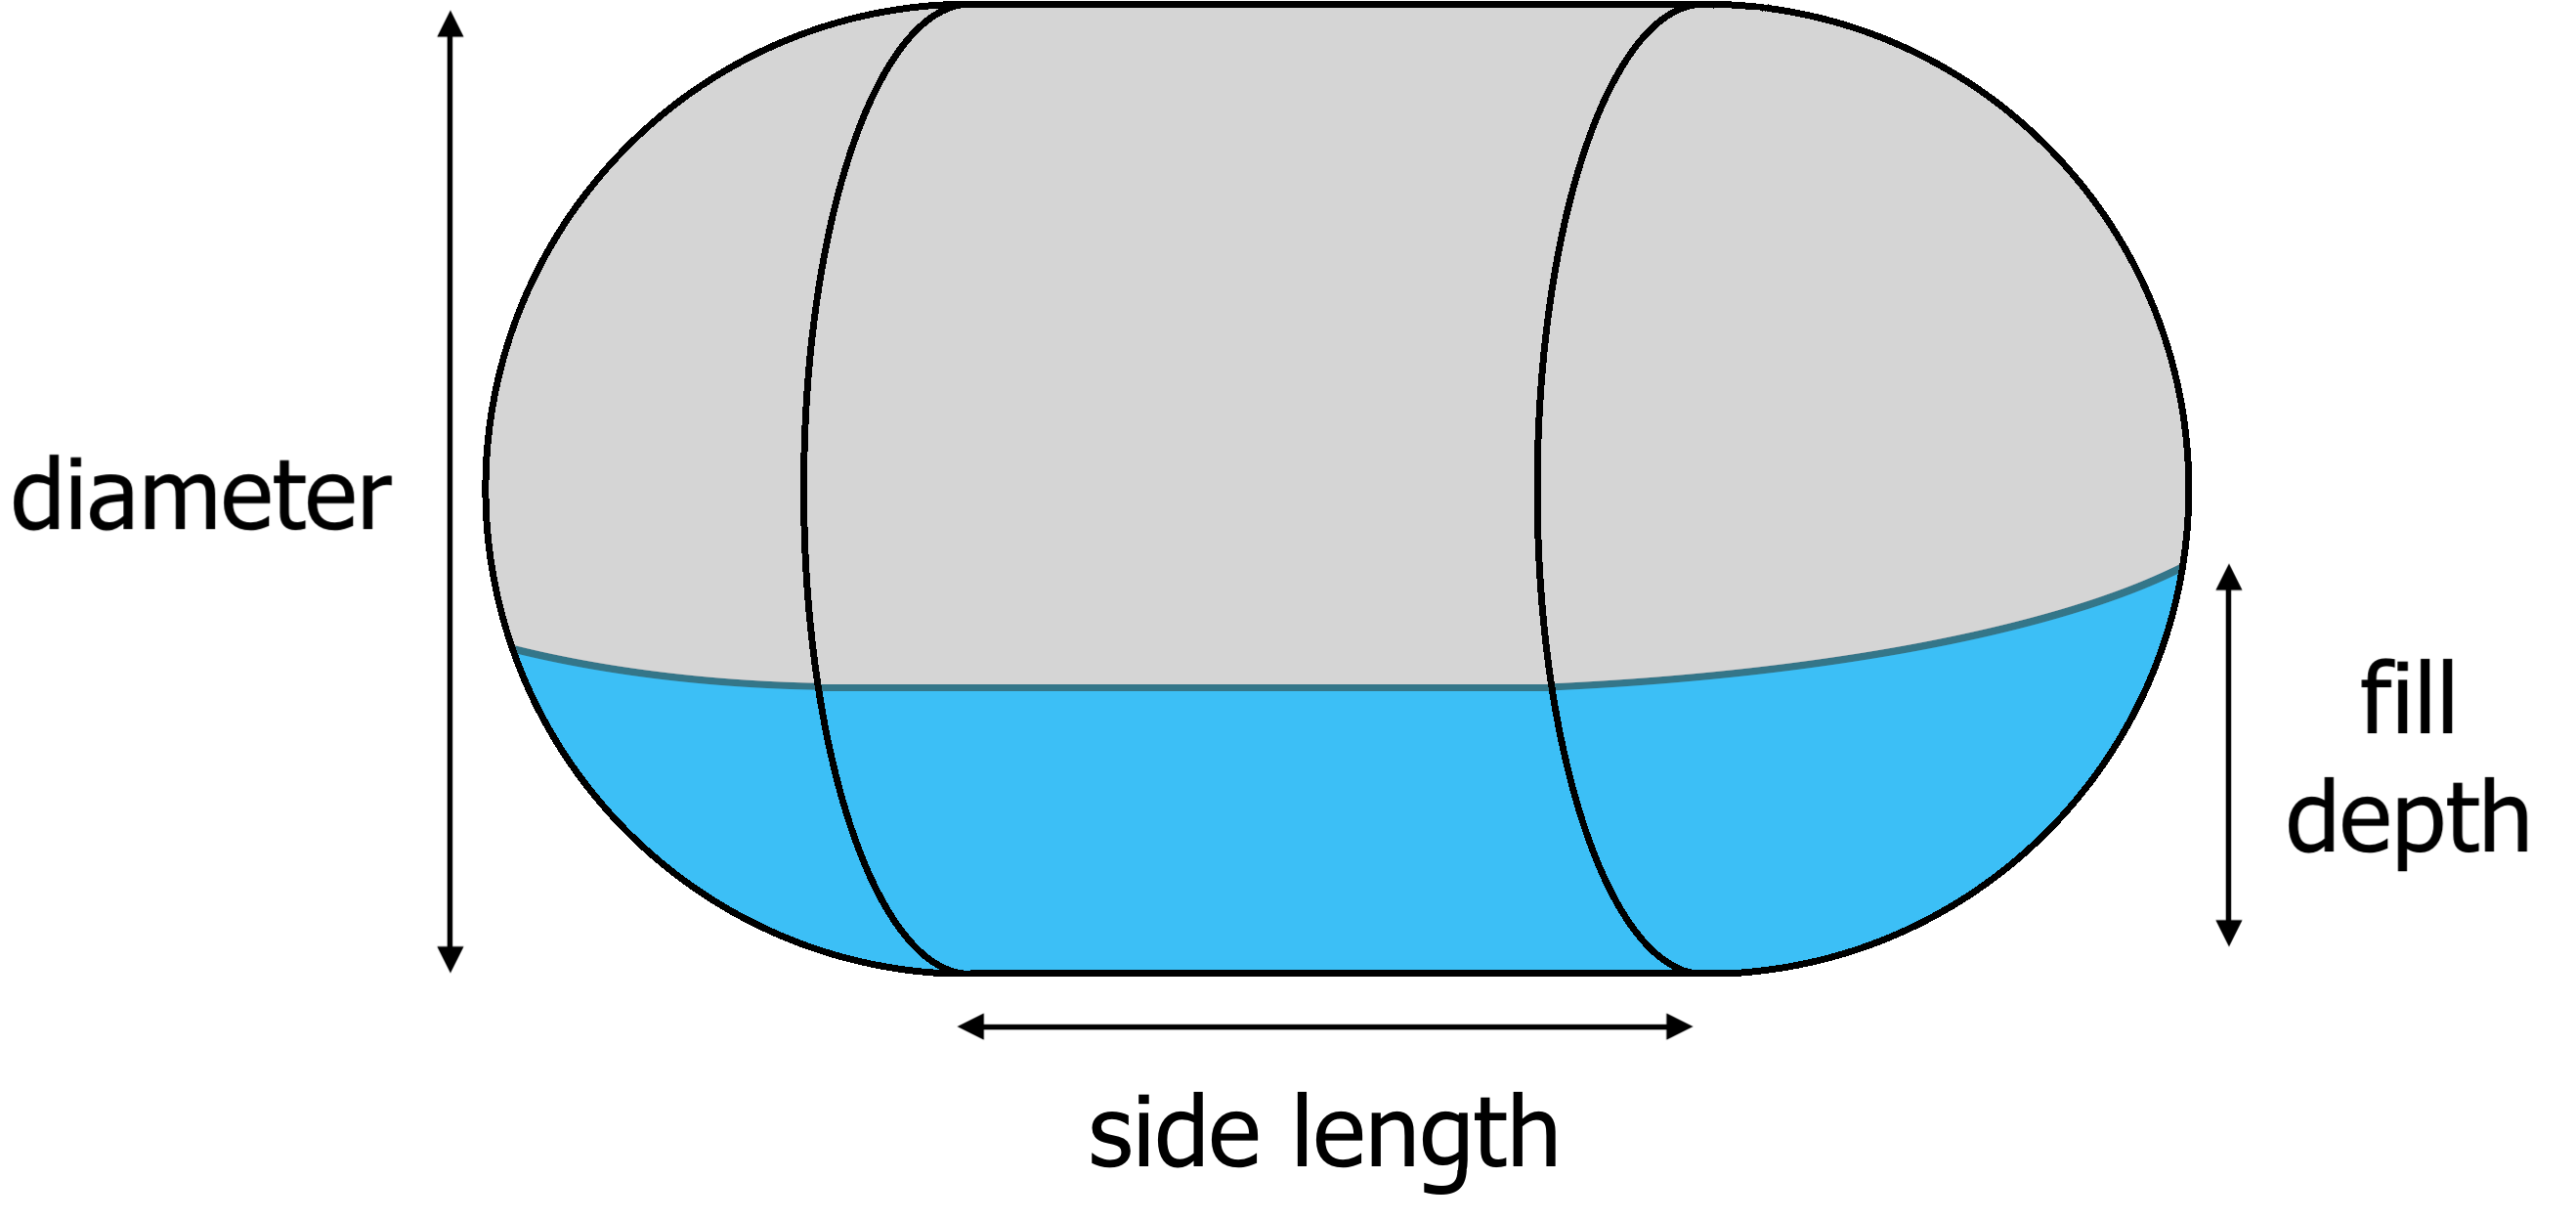 Diagram of a capsule tank showing the diameter and length dimensions